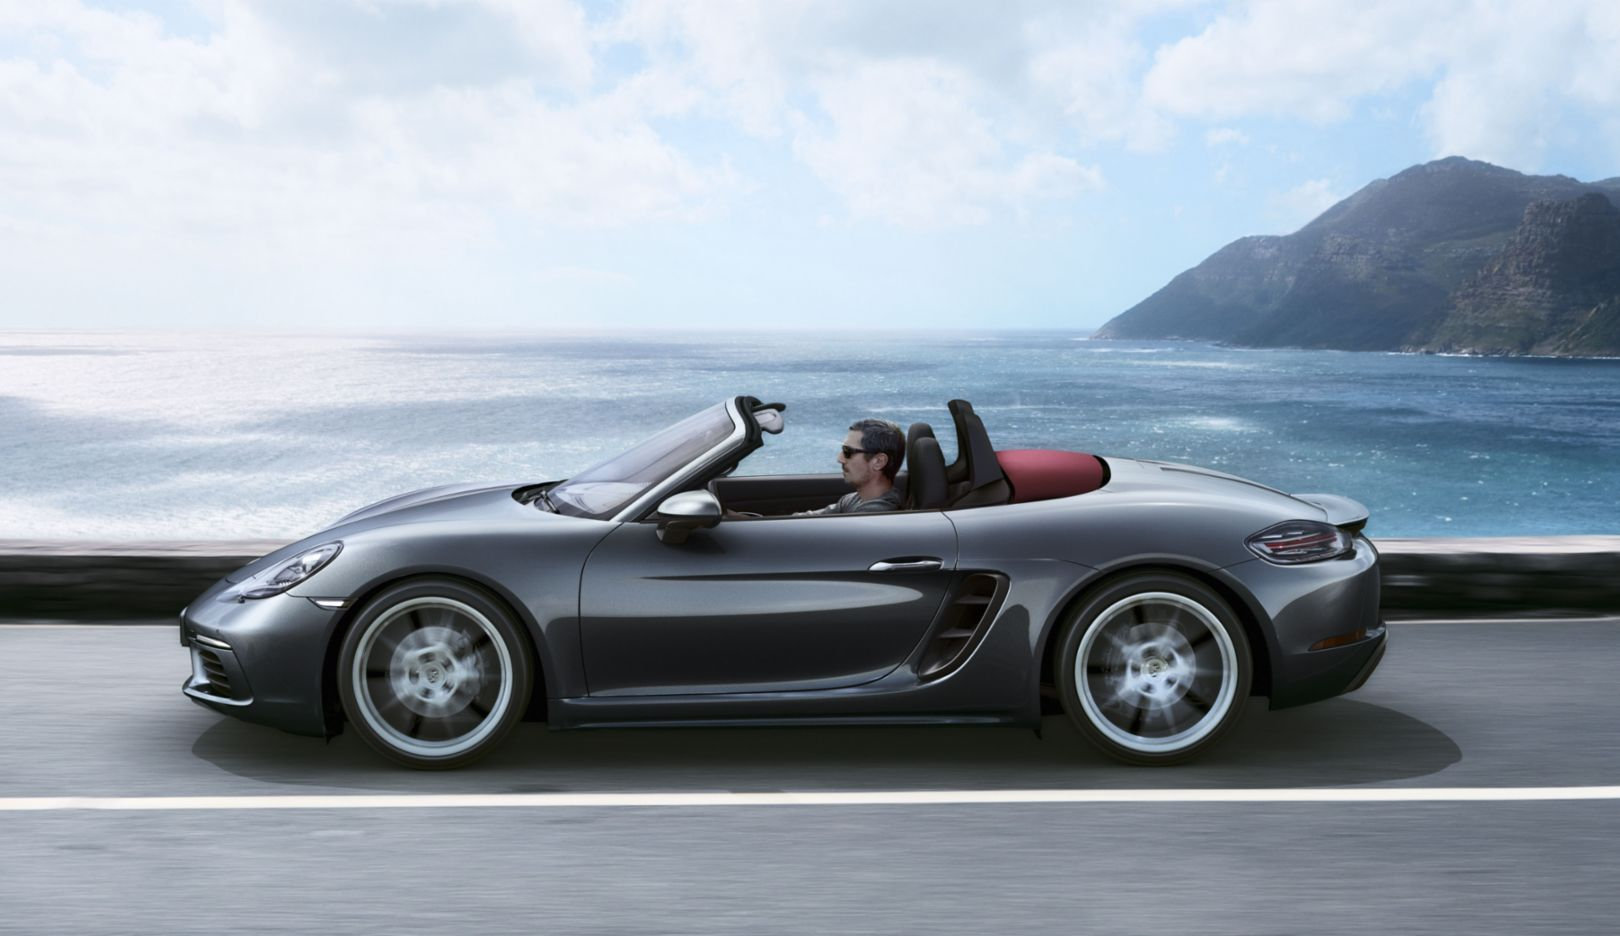 982 generation: model years 2016–today. Twenty years after the first Boxster's début, Porsche is relaunching the roadster: the new model generation is called the 718 and is a nod to the 718 mid-engine sports cars from the 1950s and 1960s. The centrepiece is the newly developed four-cylinder boxer engine with turbocharging.